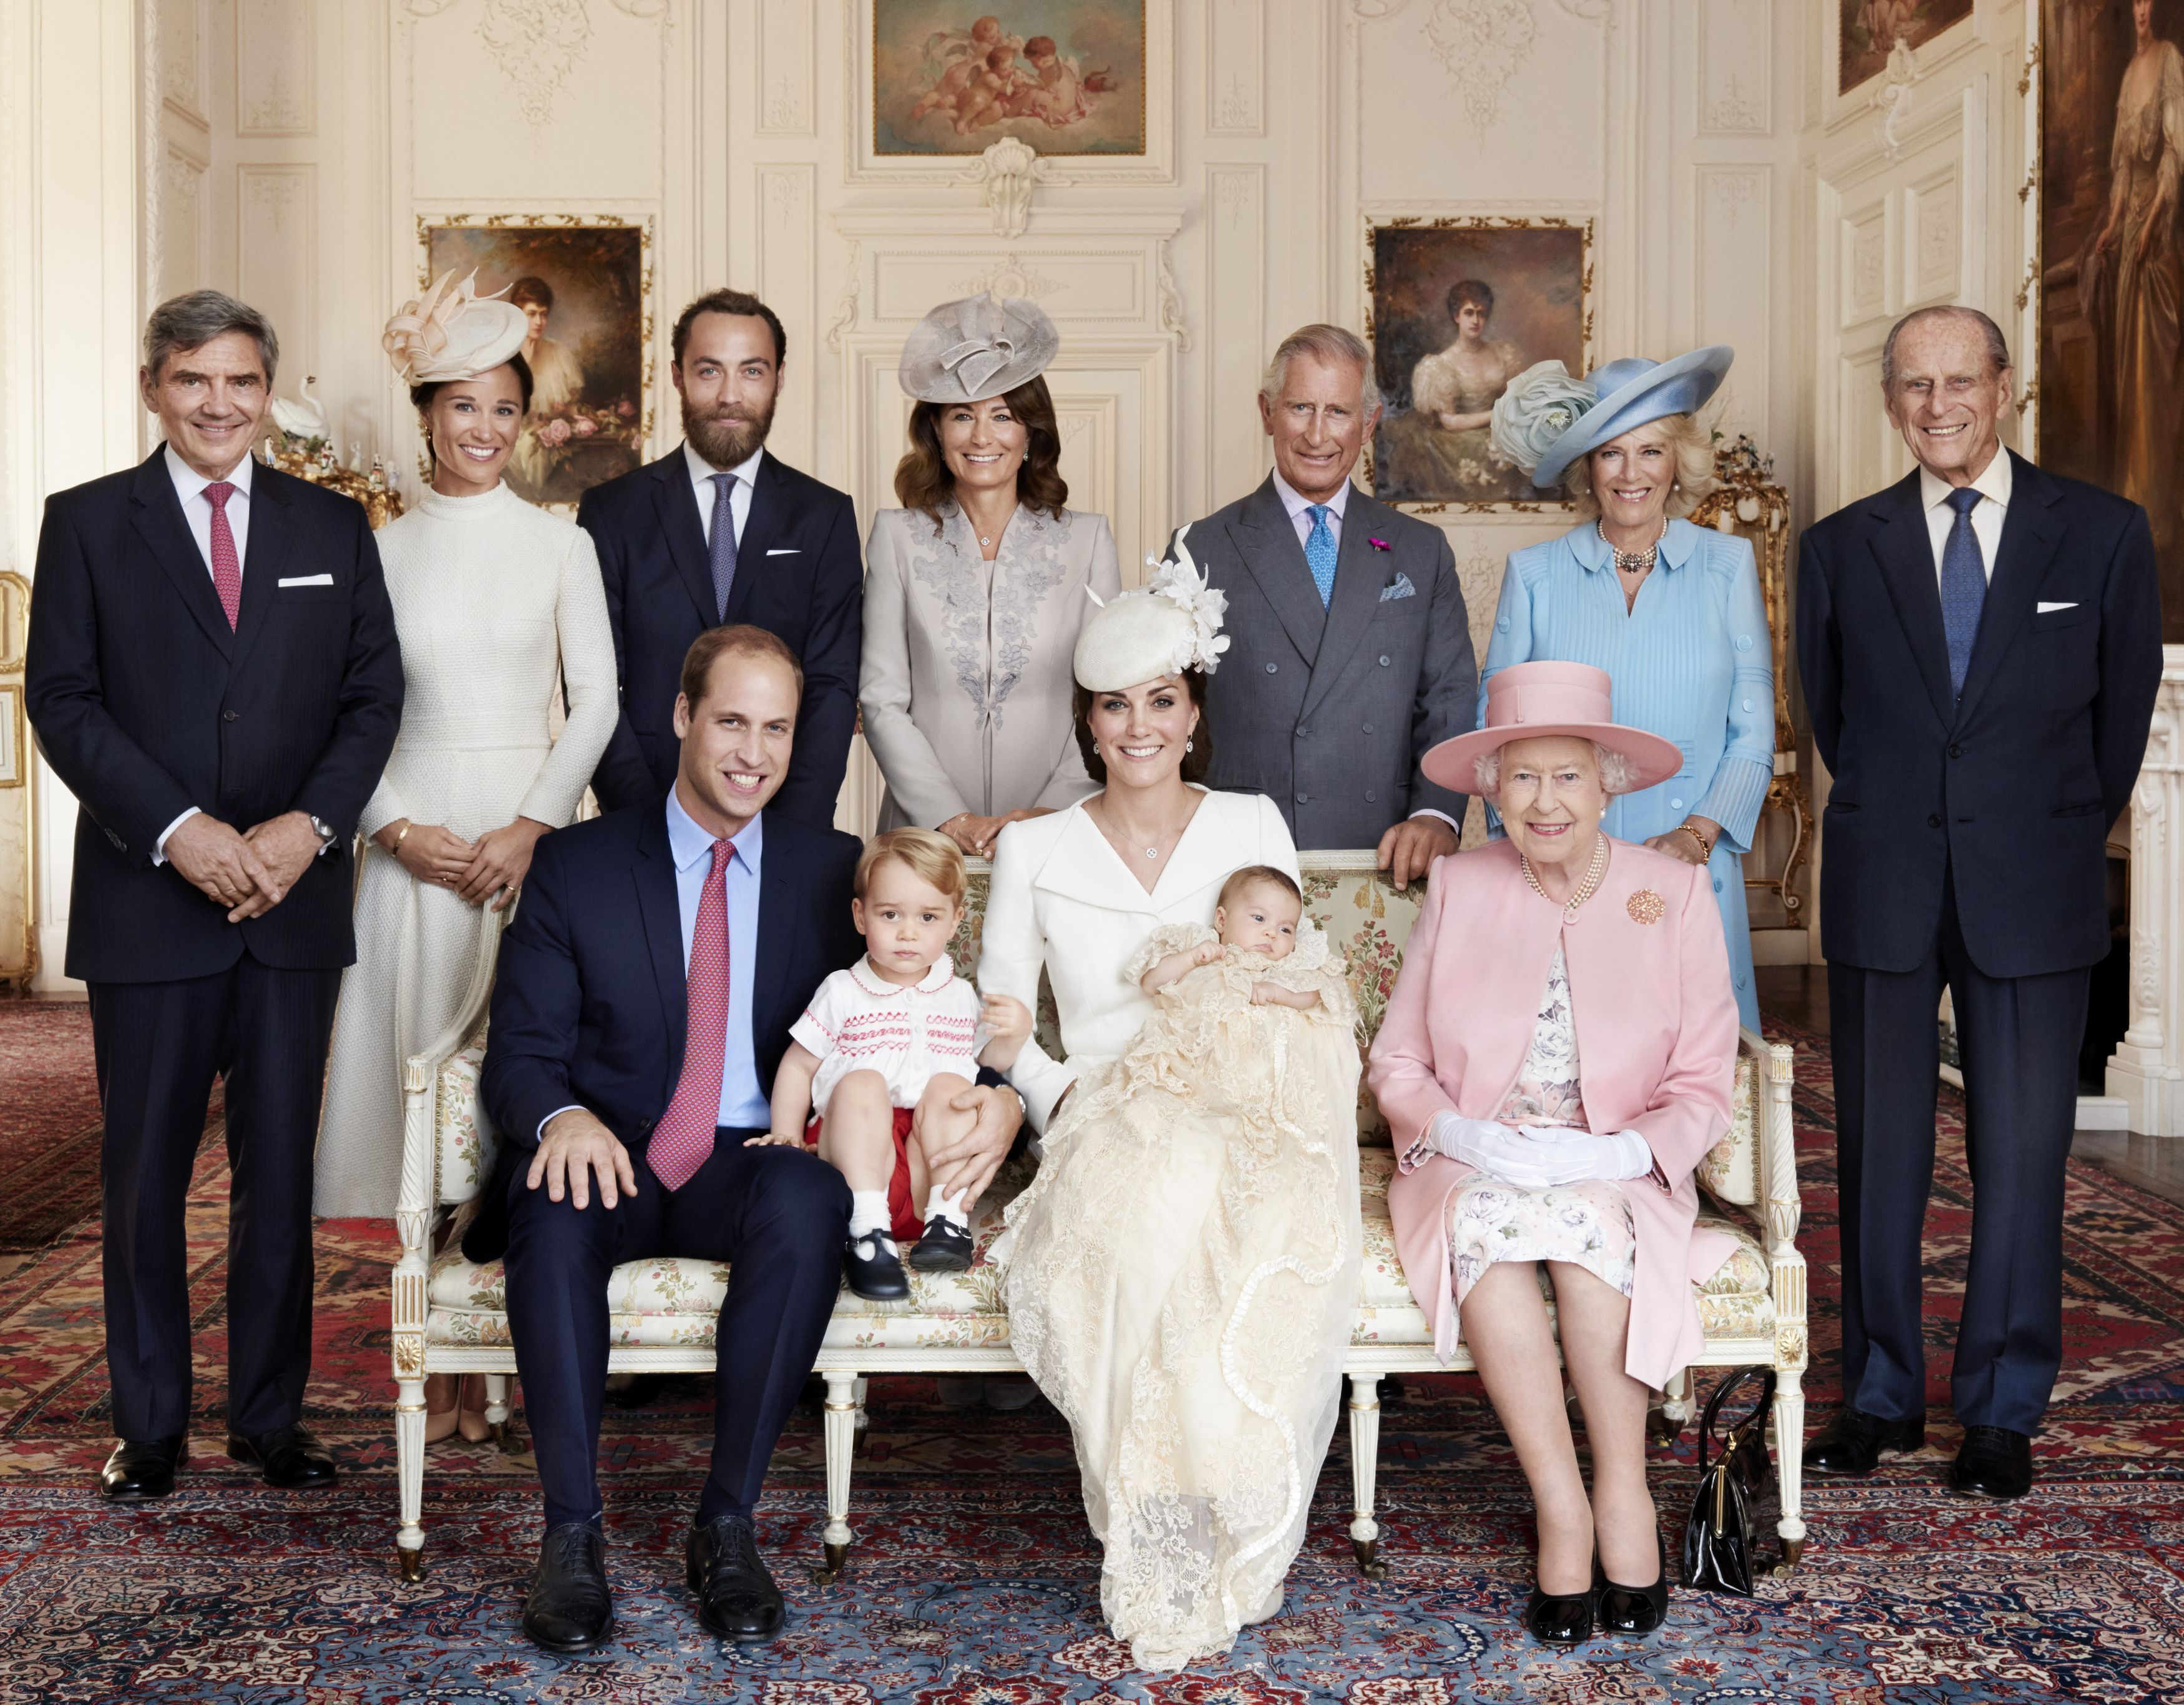 Royal christening photos – why should a monarch appear mortal?